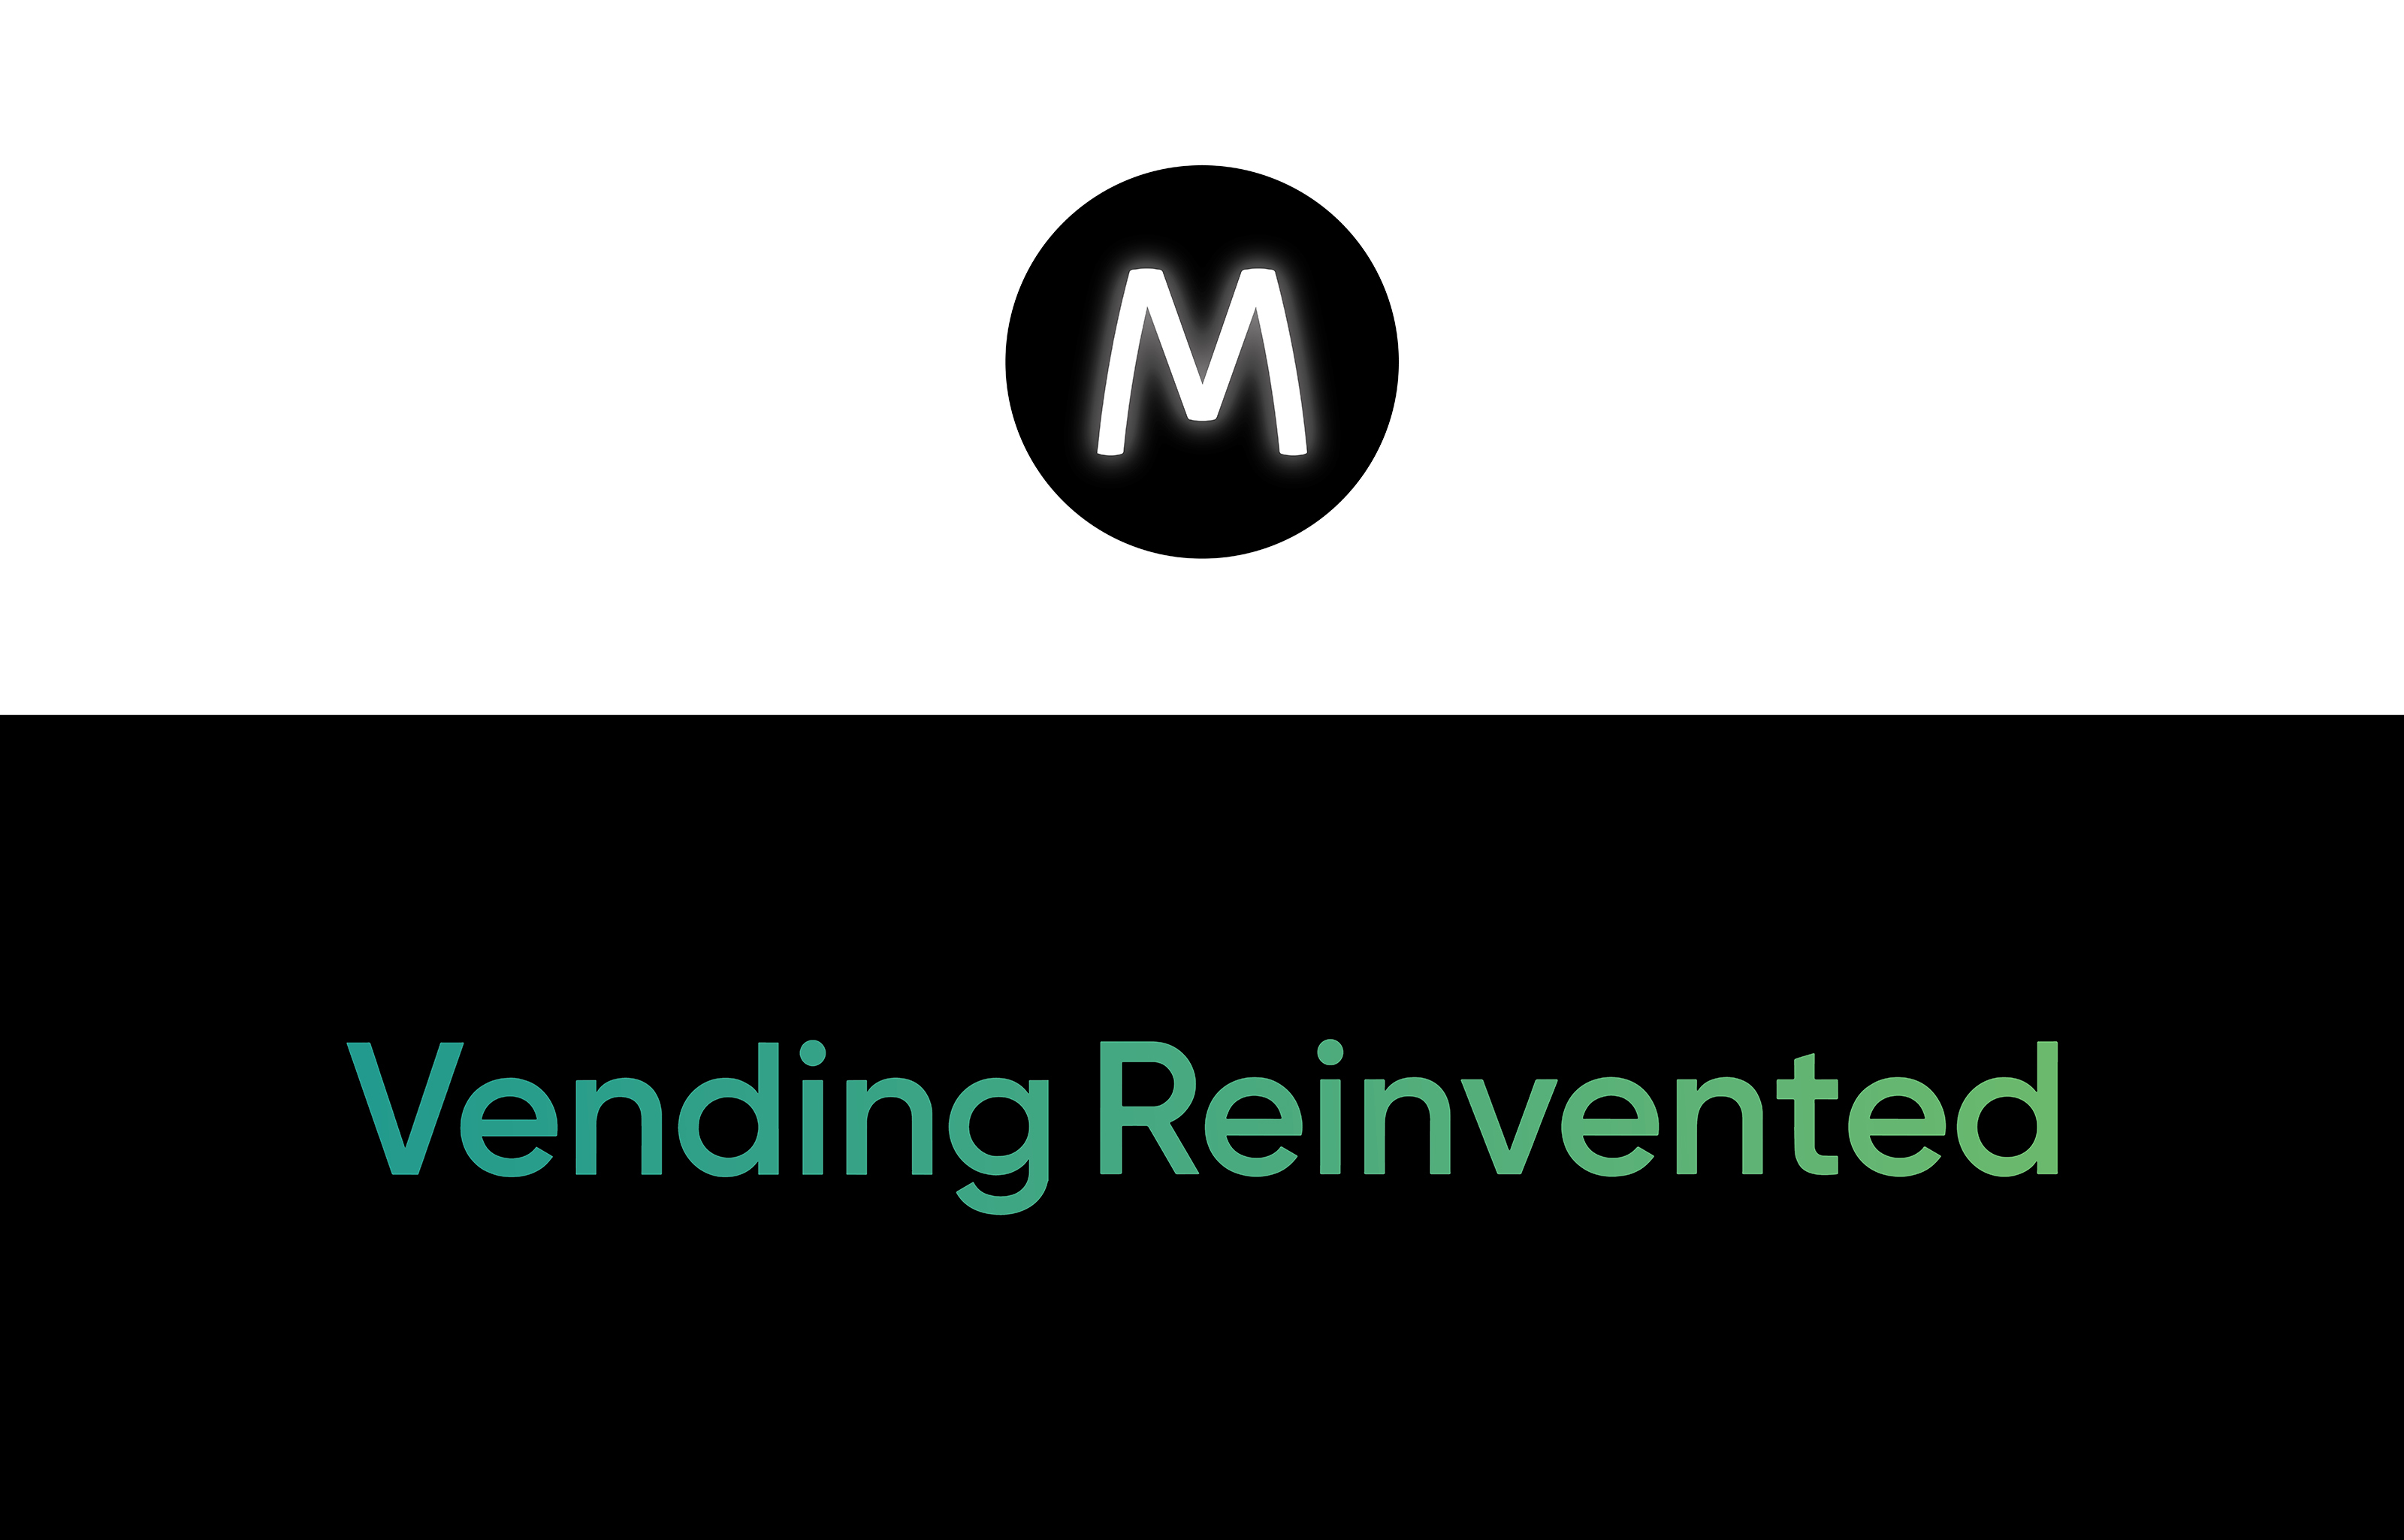 Mother_Vending_Reinvented